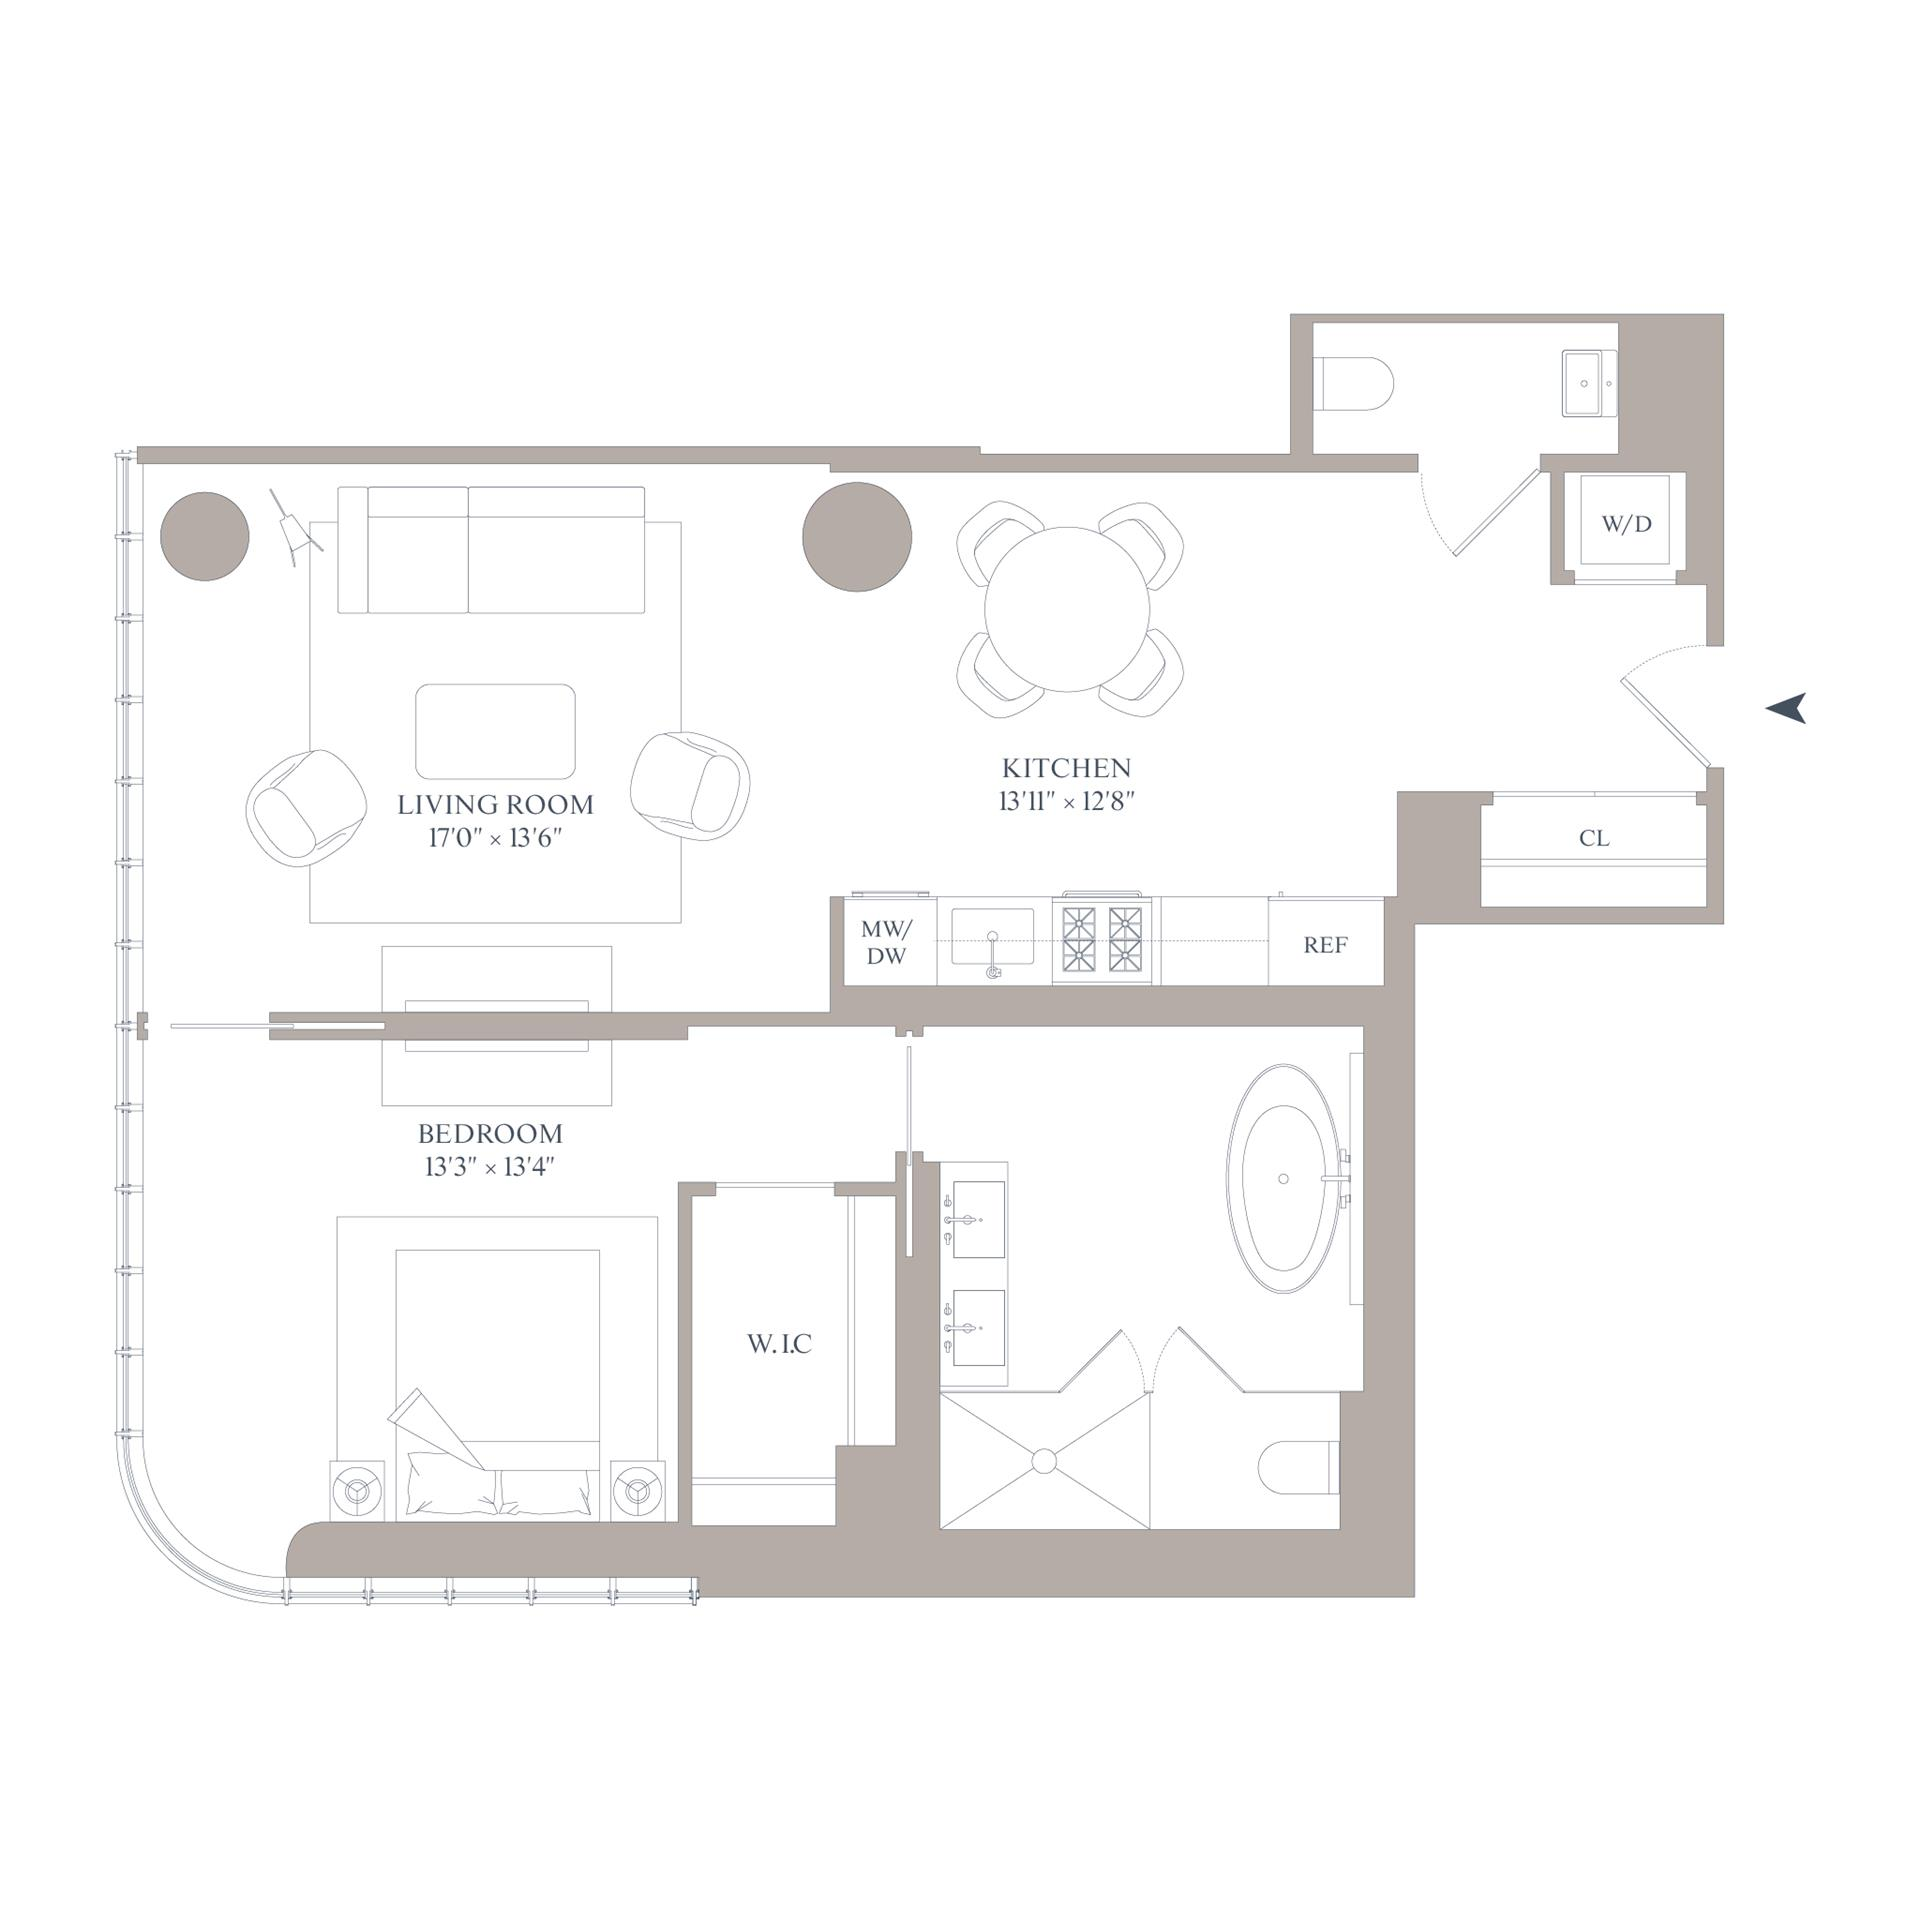 Floor plan of 565 Broome St, N10A - SoHo - Nolita, New York